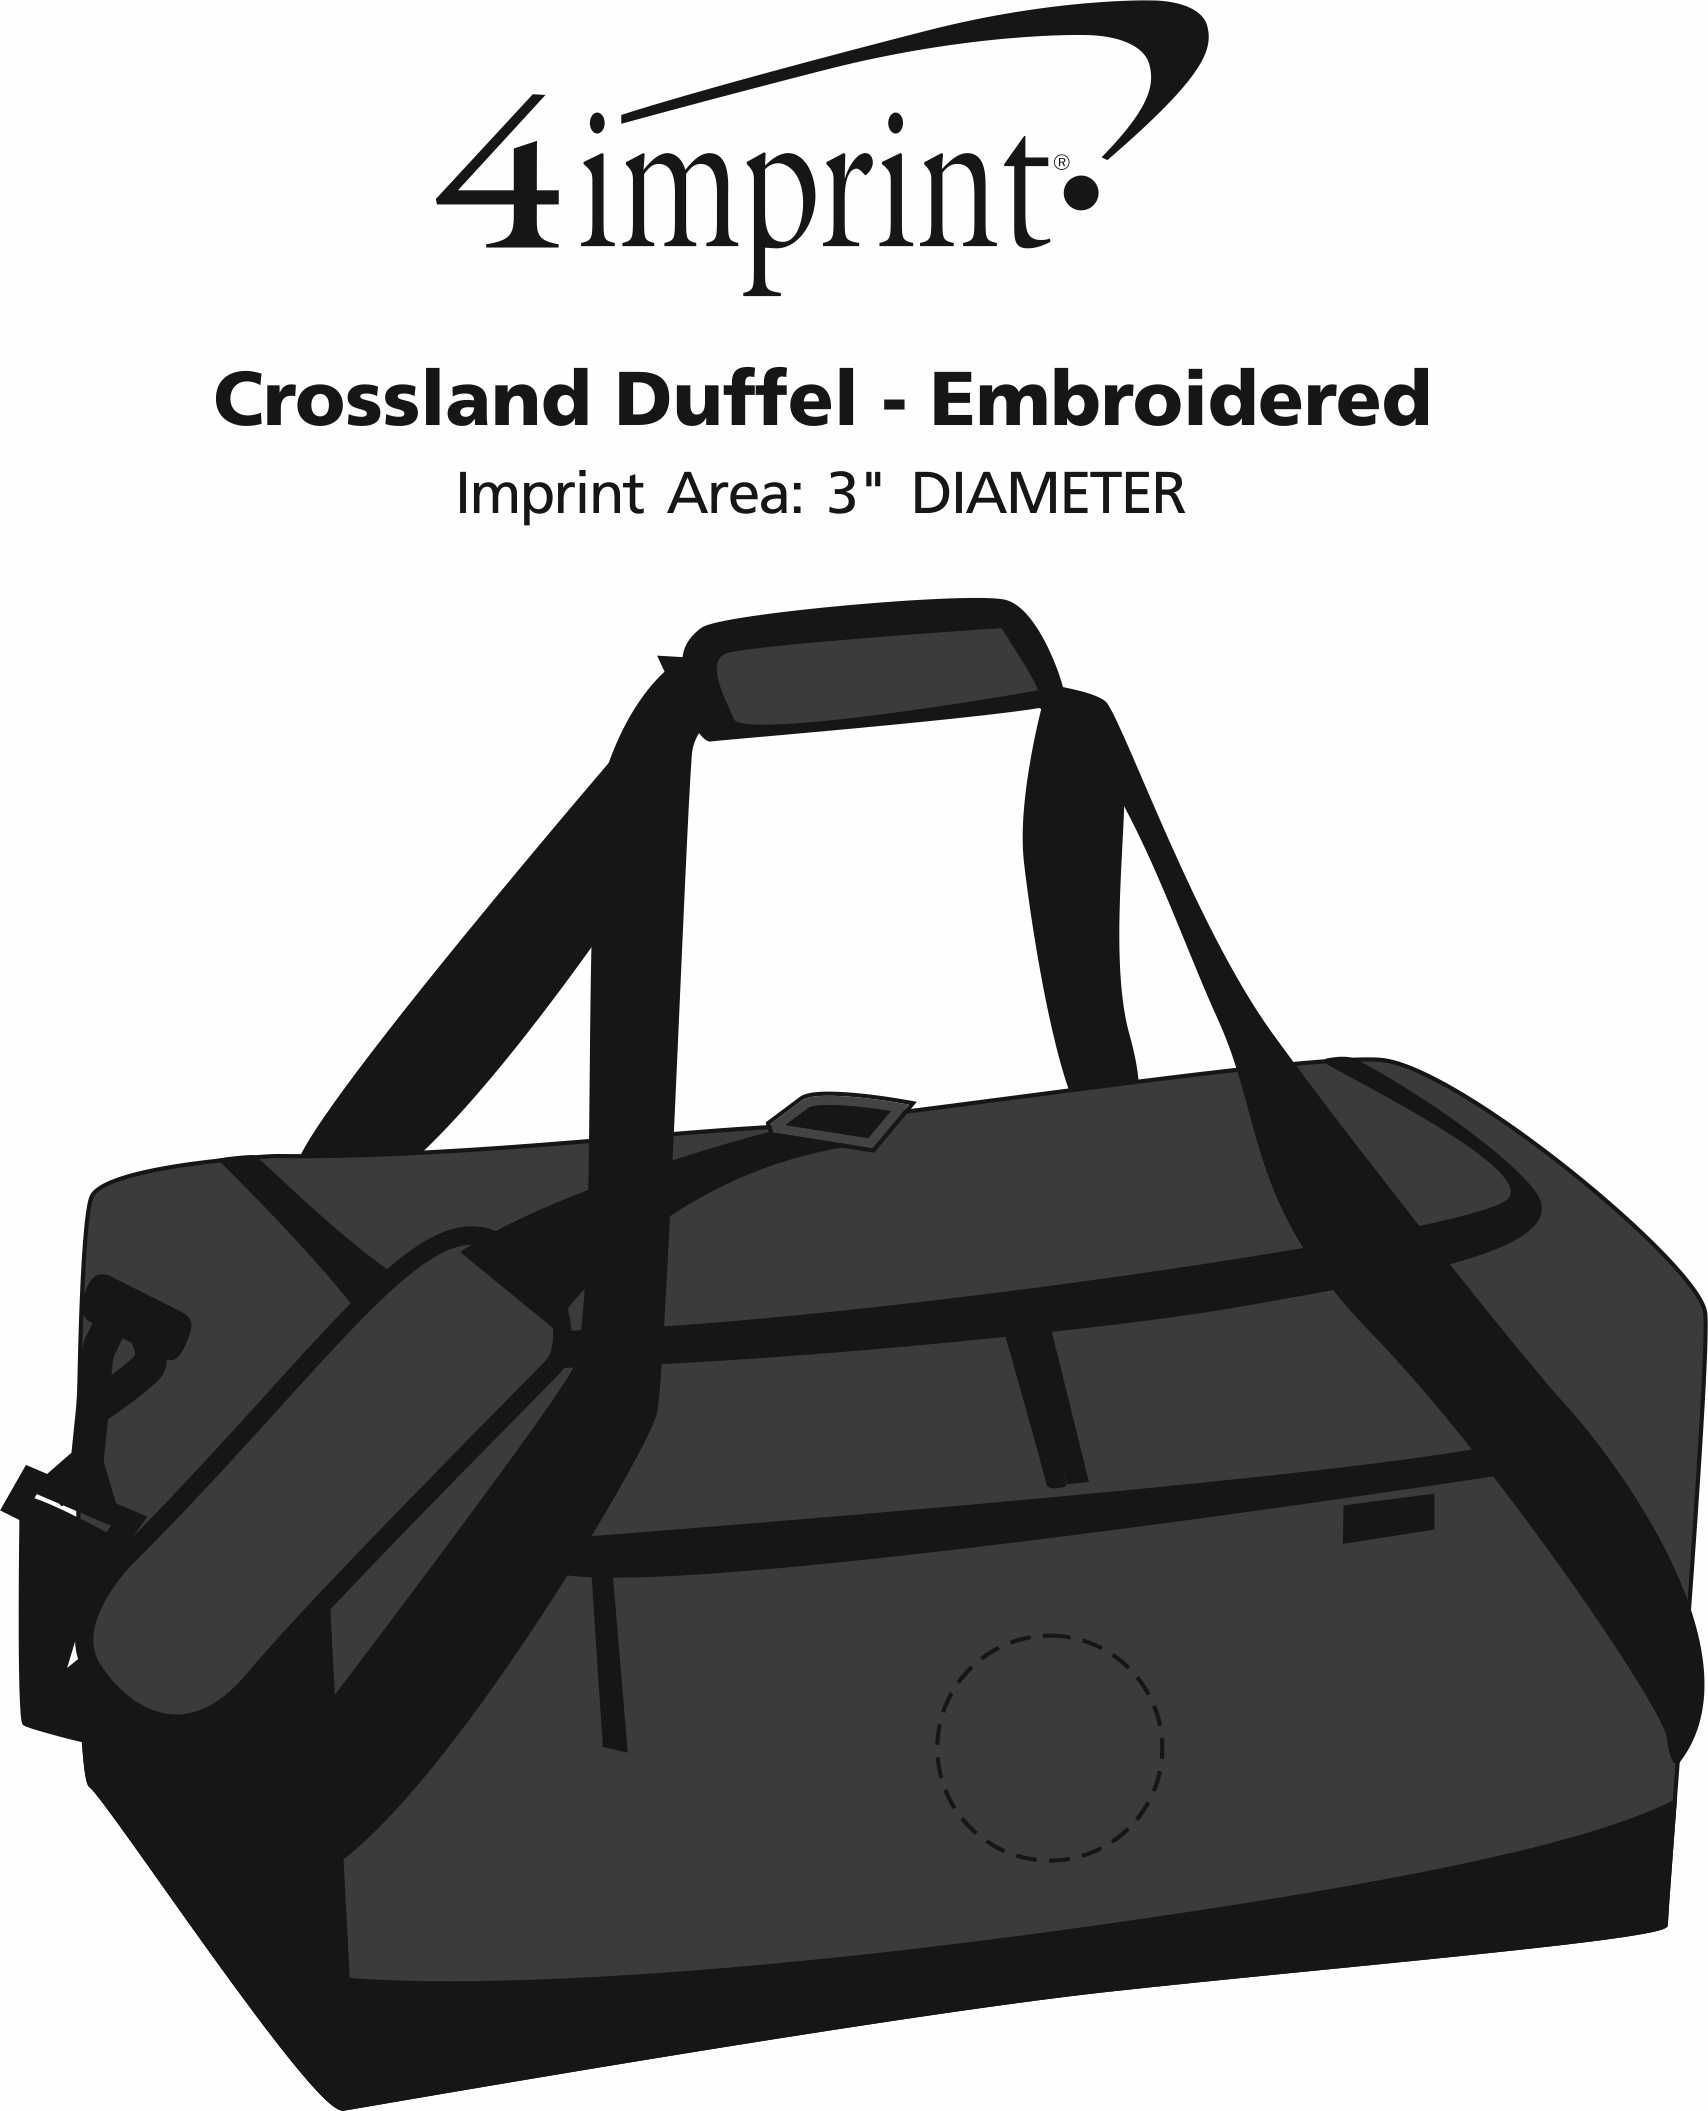 Imprint Area of Crossland Duffel - Embroidered